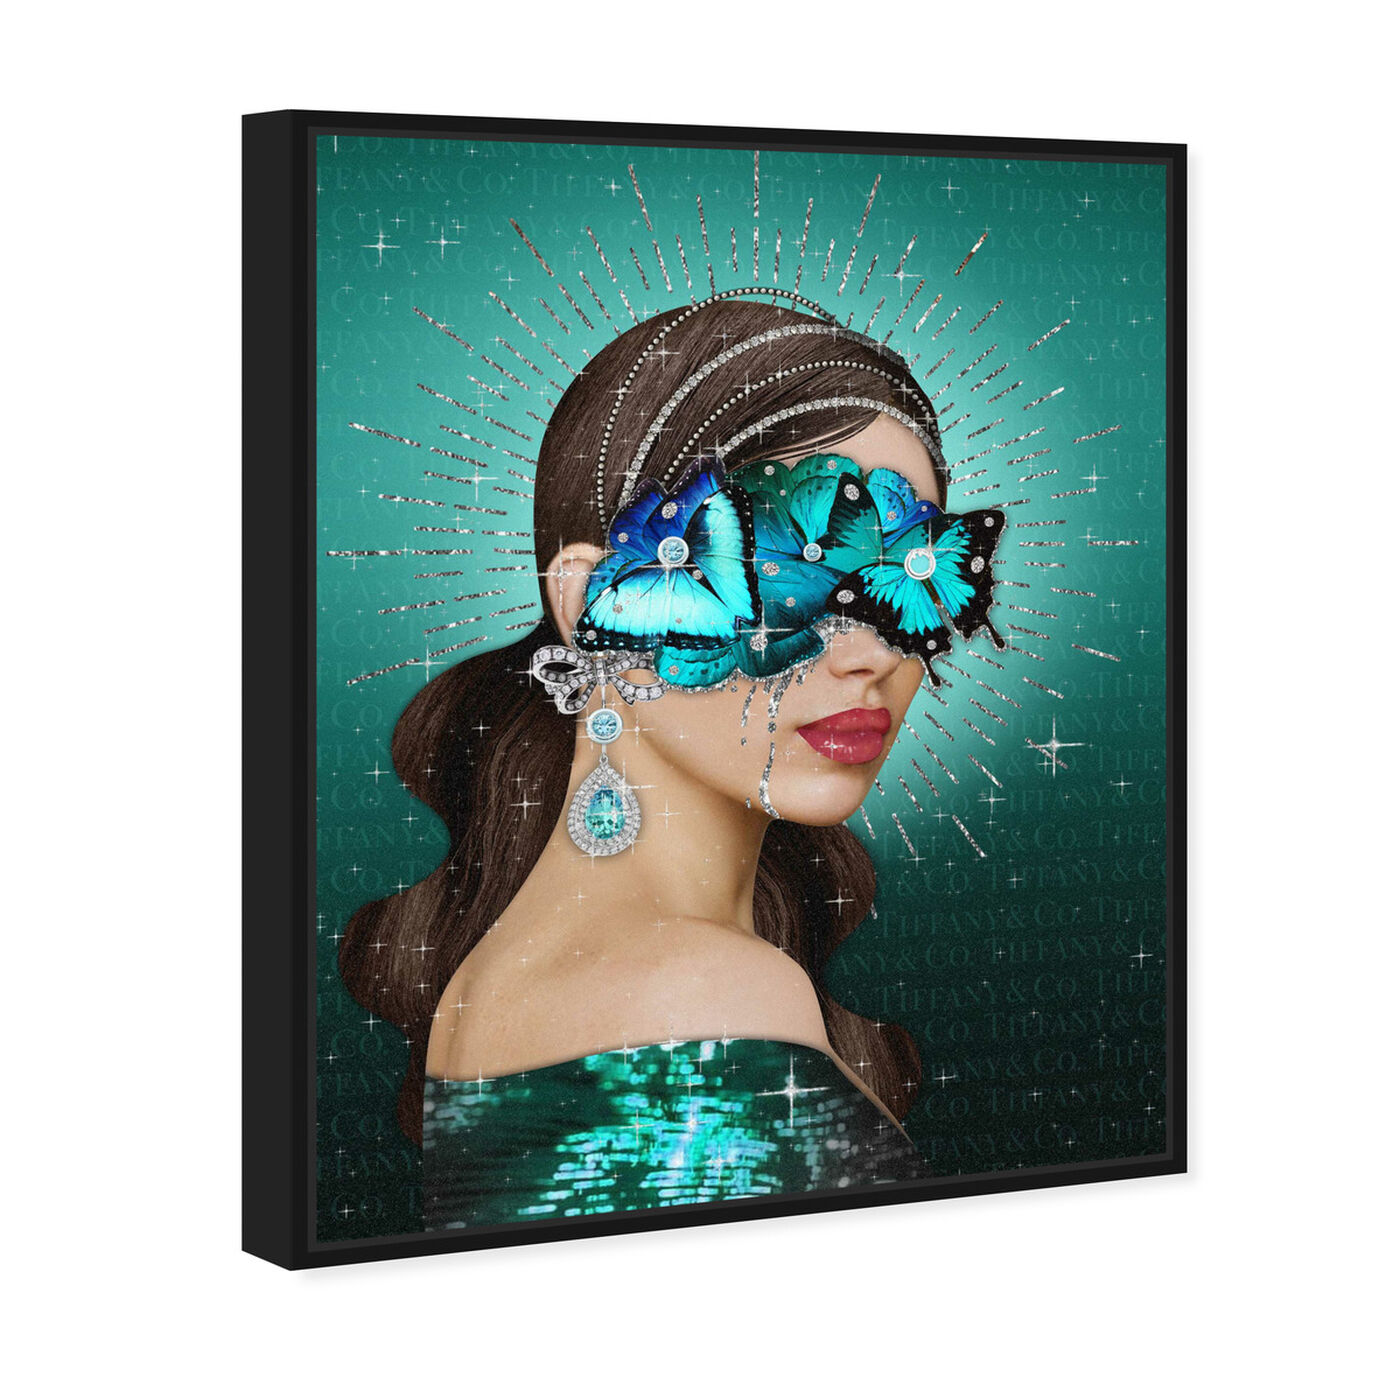 Angled view of Turquoise Queen featuring fashion and glam and portraits art.